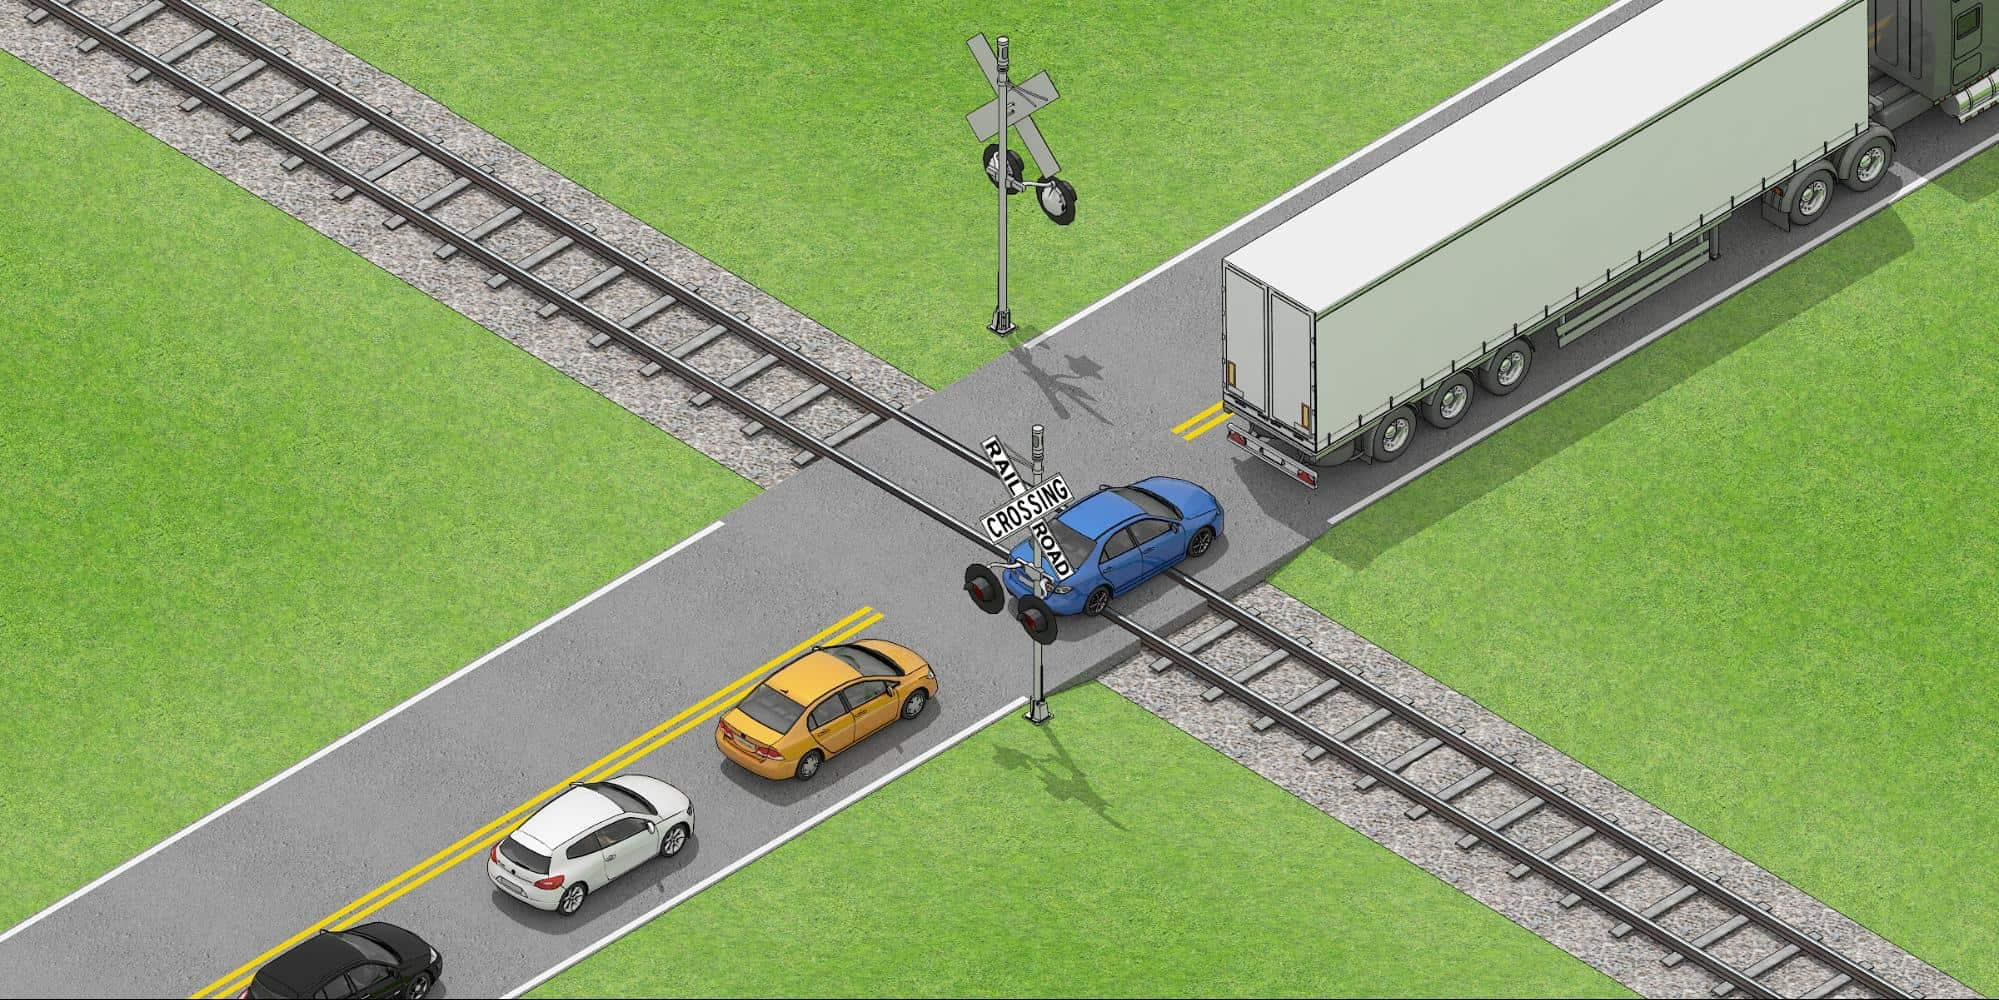 car that is stuck or stalling on railroad tracks